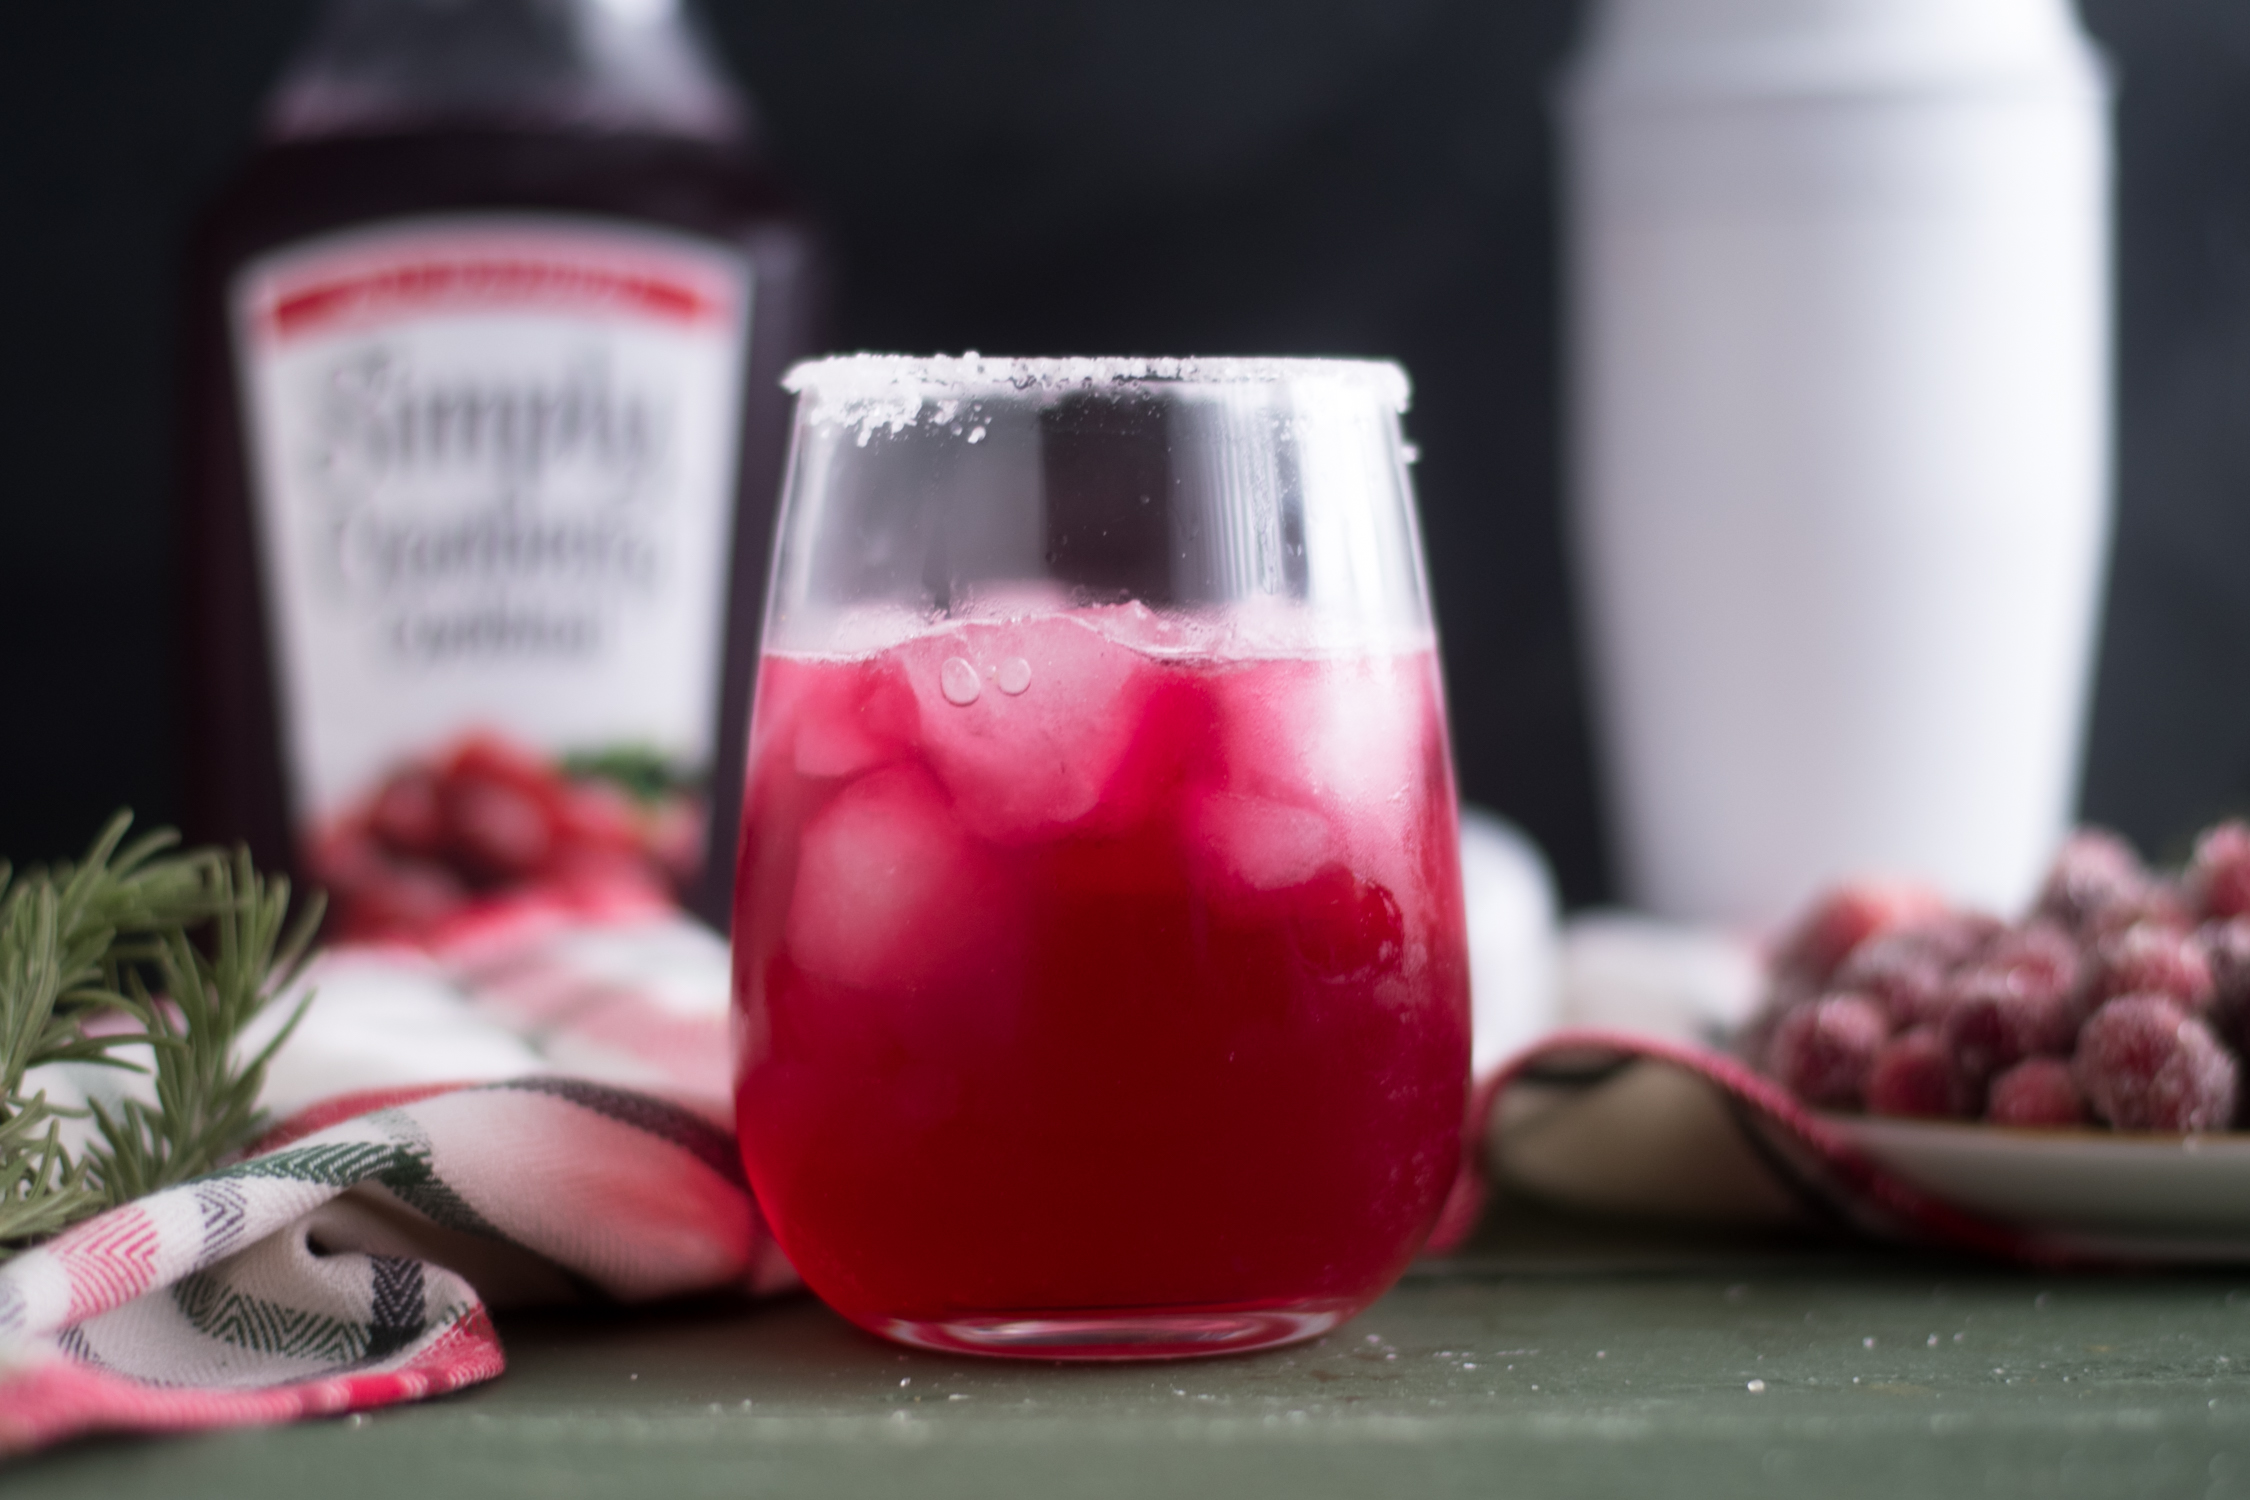 This Cranberry Margarita is one of my favorite cocktails to make during the holidays.